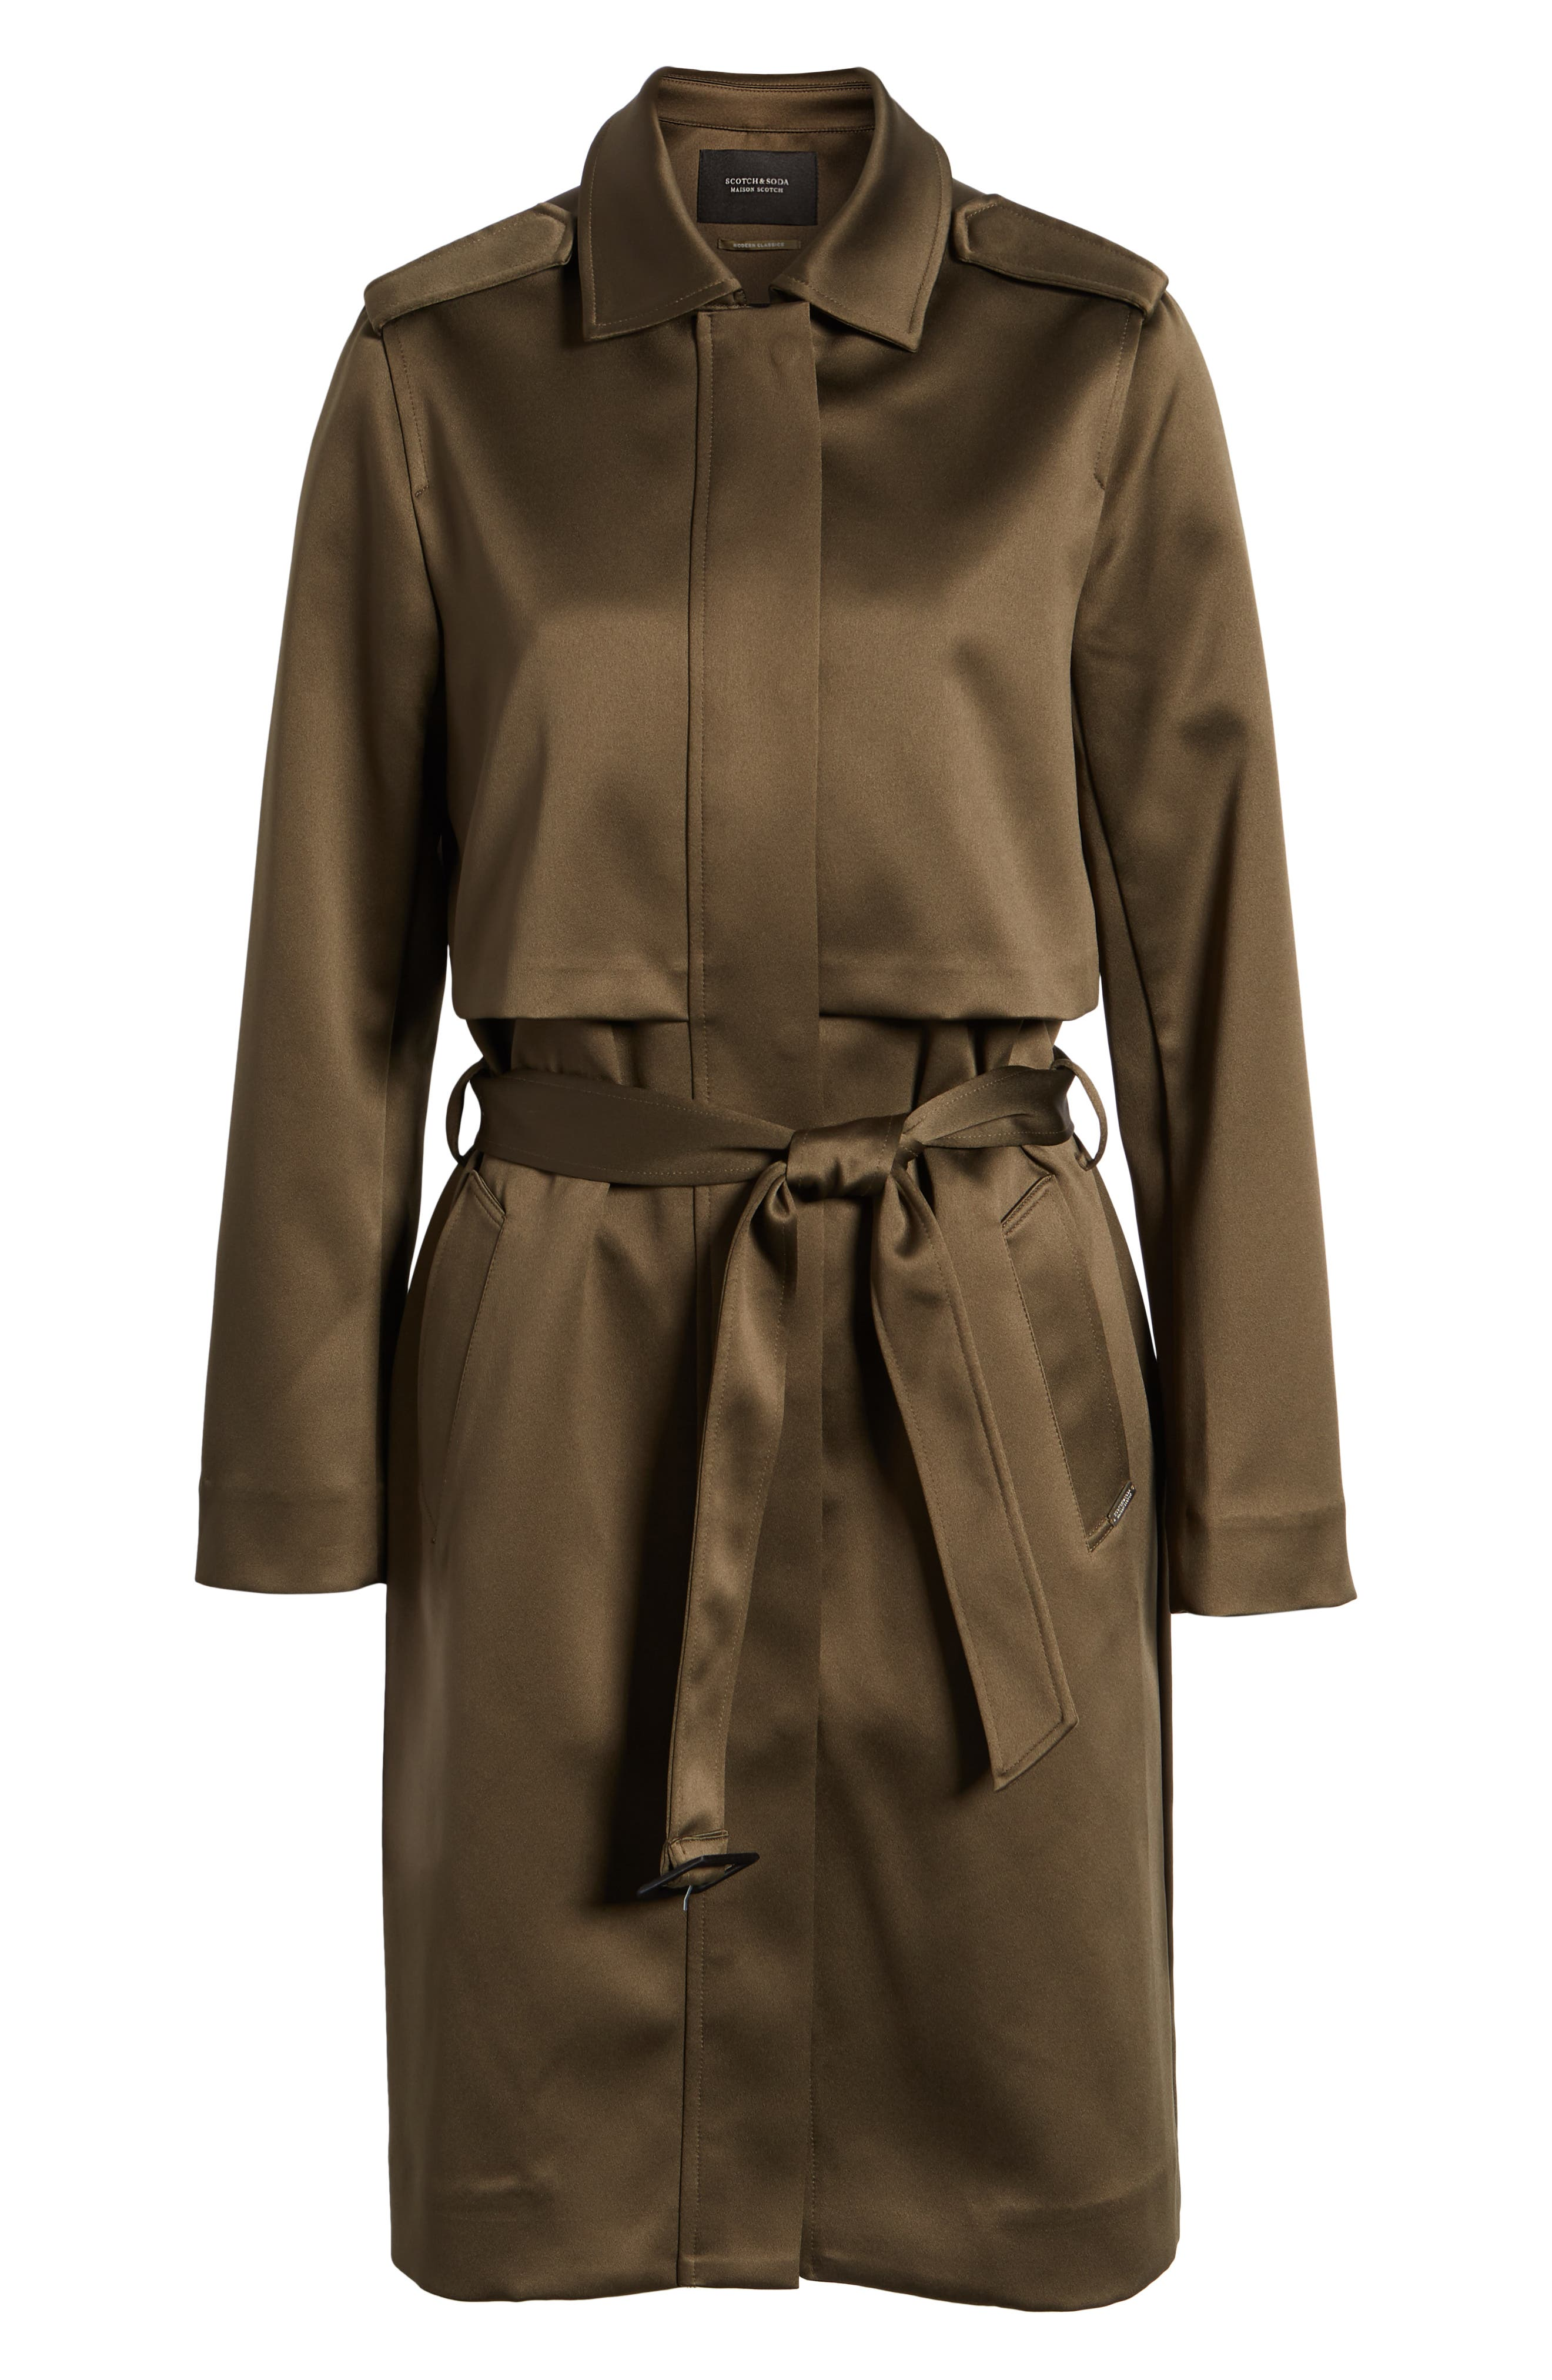 SCOTCH & SODA,                             Shiny Structured Trench Coat,                             Alternate thumbnail 6, color,                             301